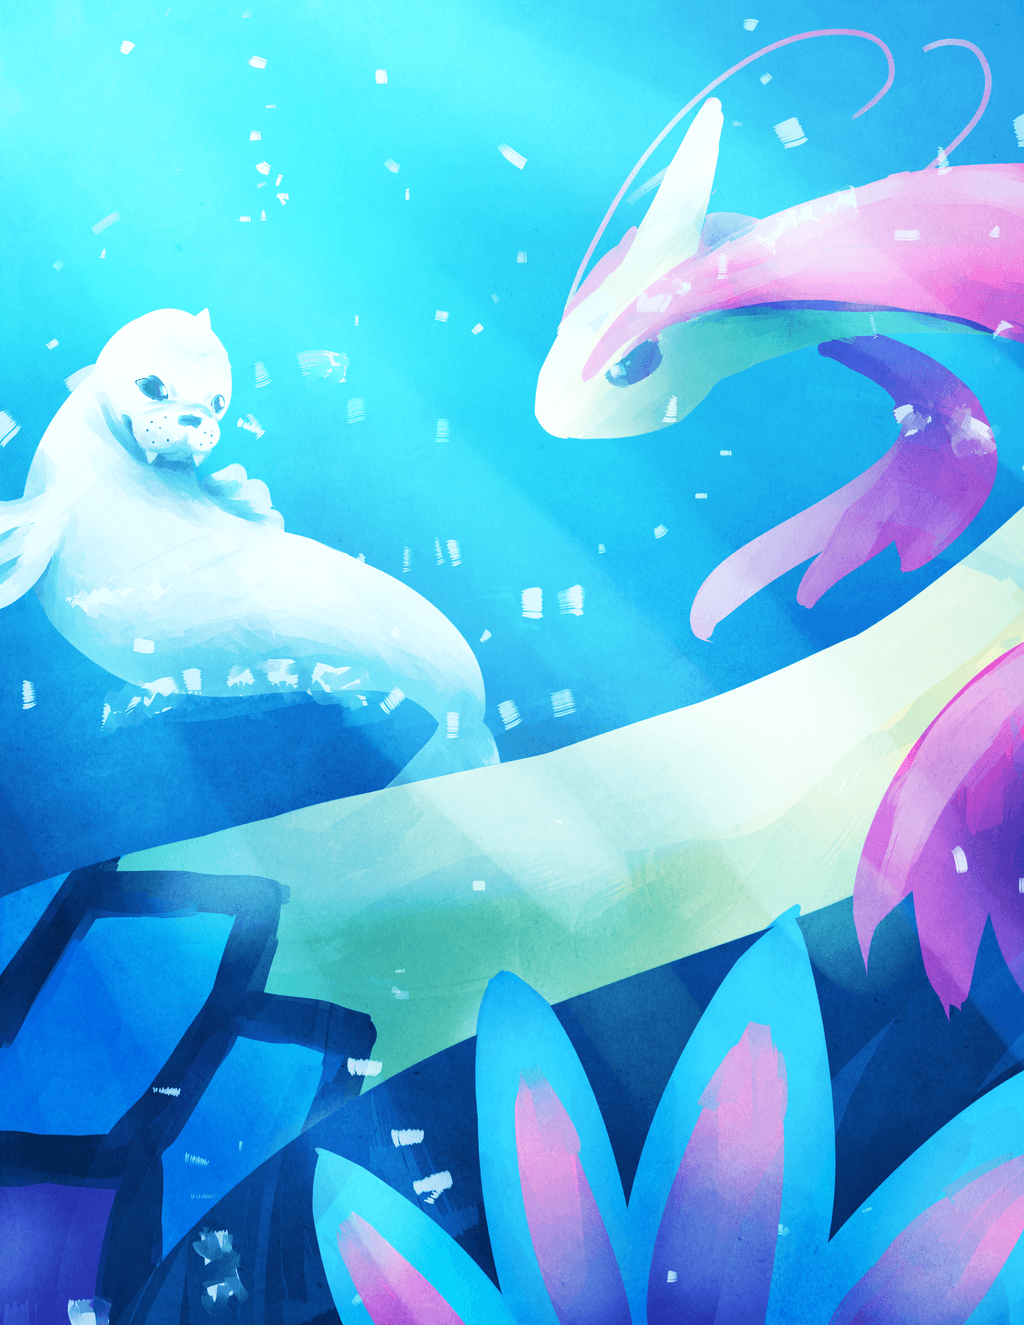 Milotic and Dewgong by laclefaverite on DeviantArt